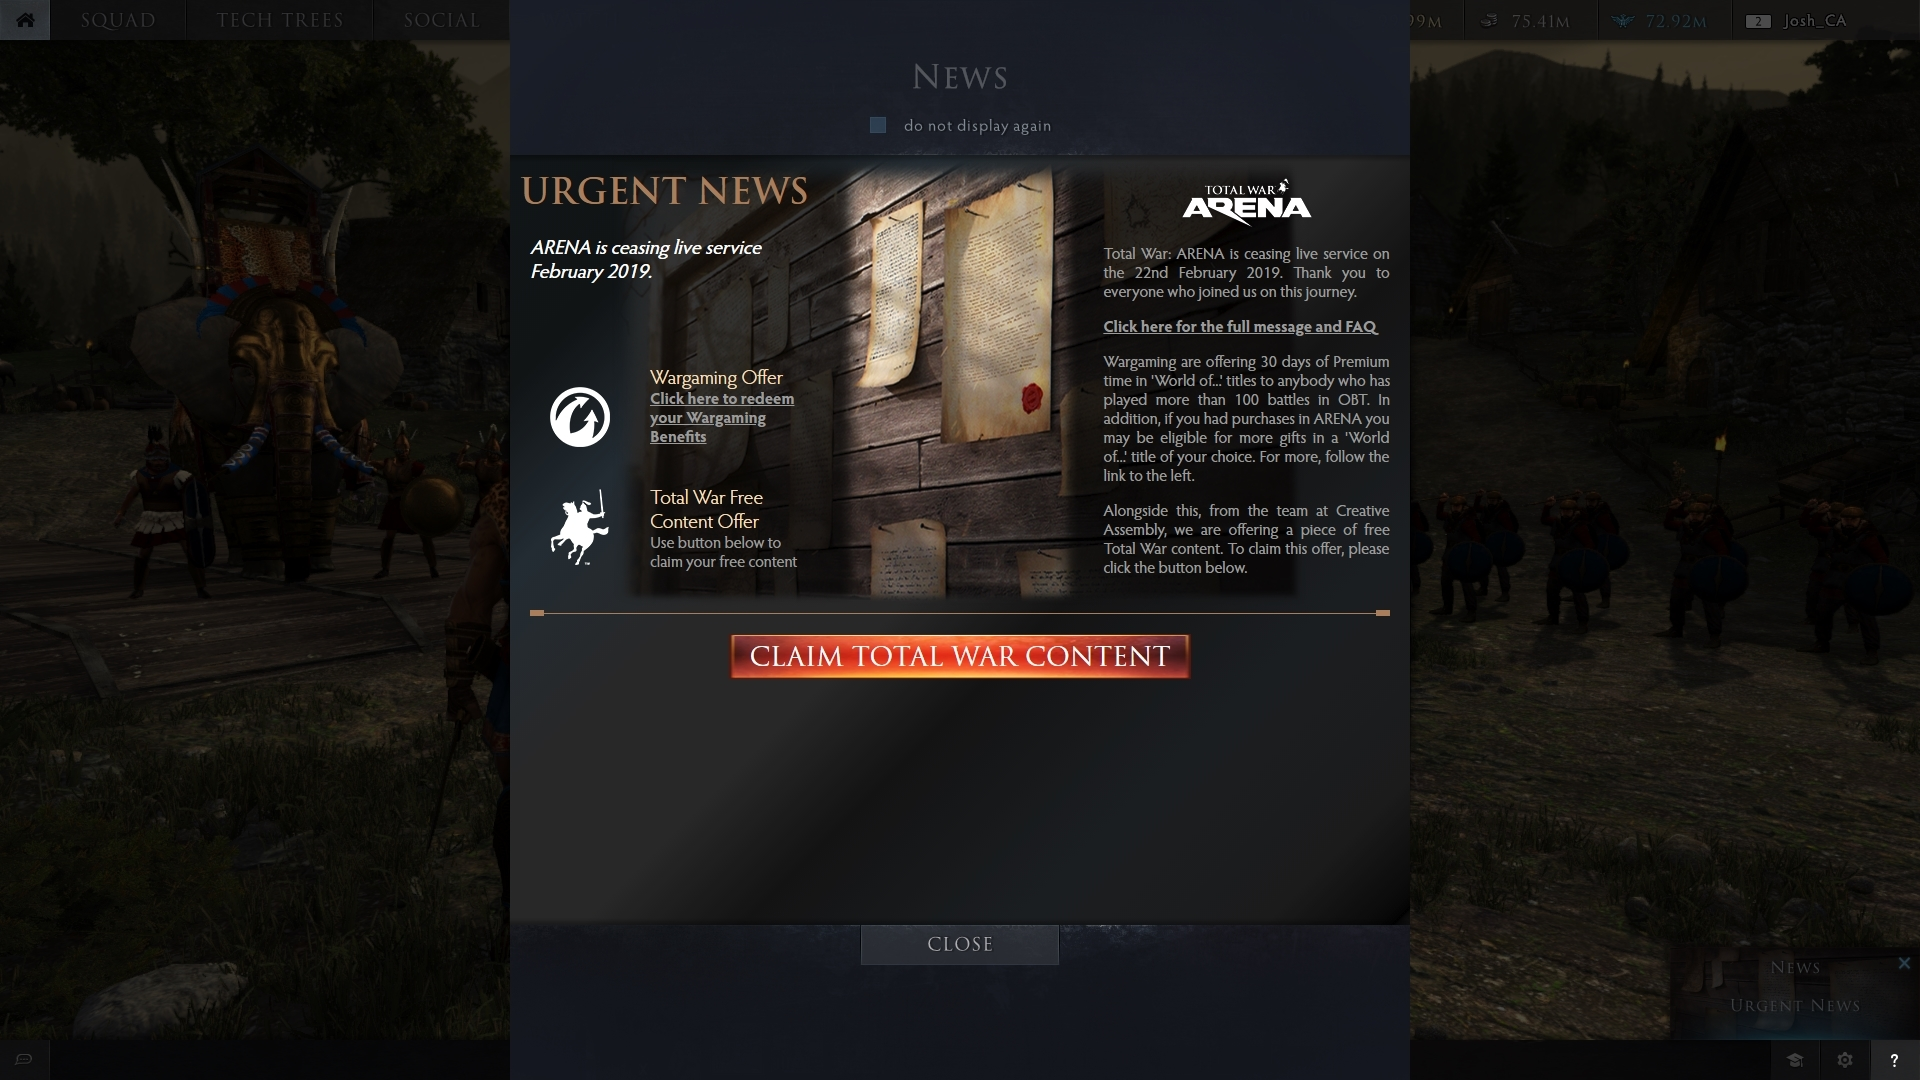 Total War: ARENA – How to Claim Your Free Total War Content - Total War